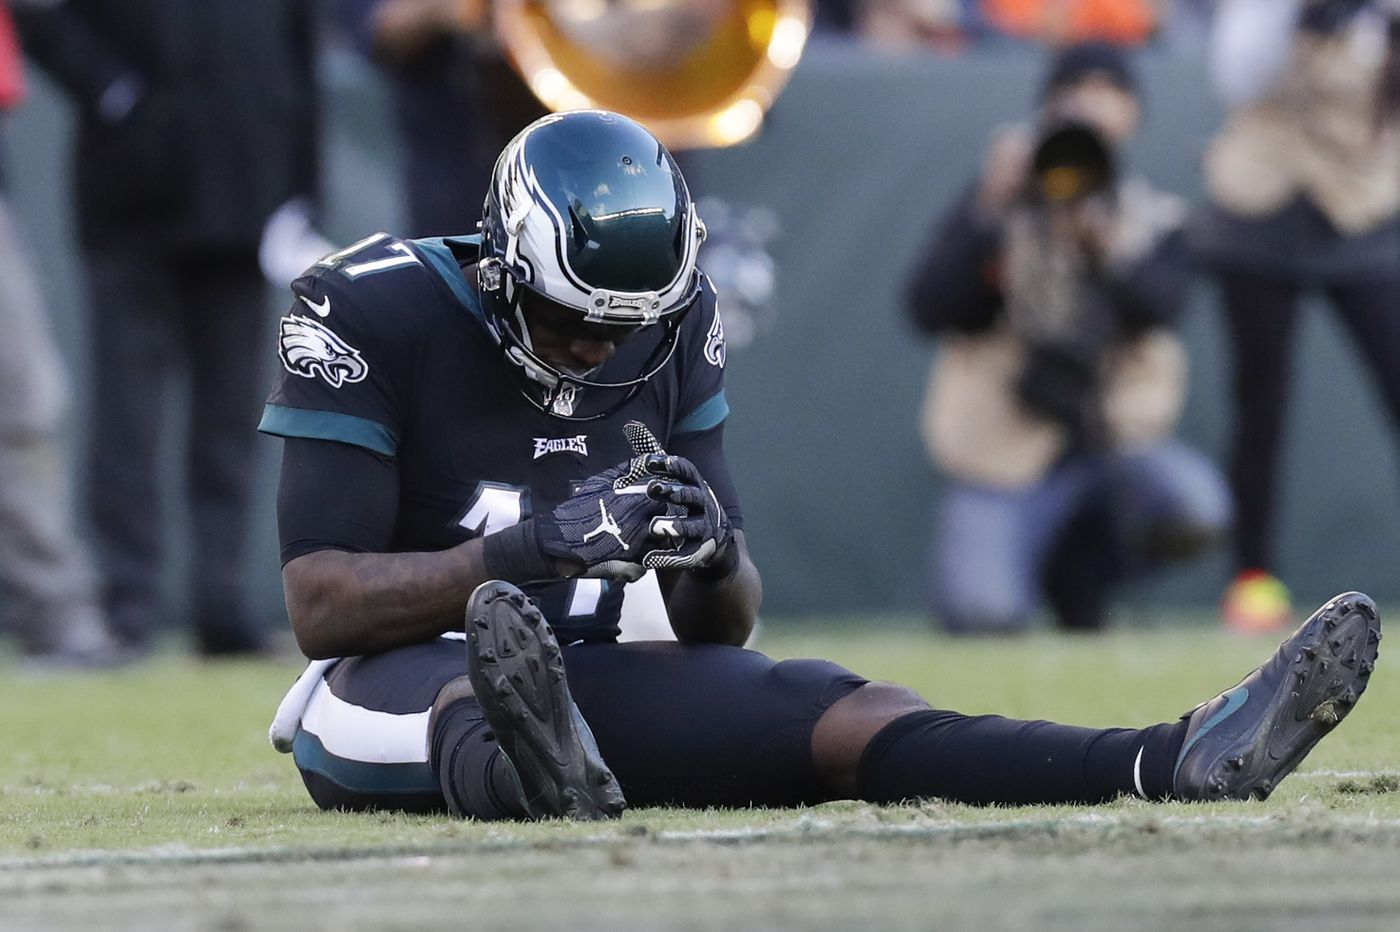 Eagles' Alshon Jeffery misses second straight practice with ankle injury